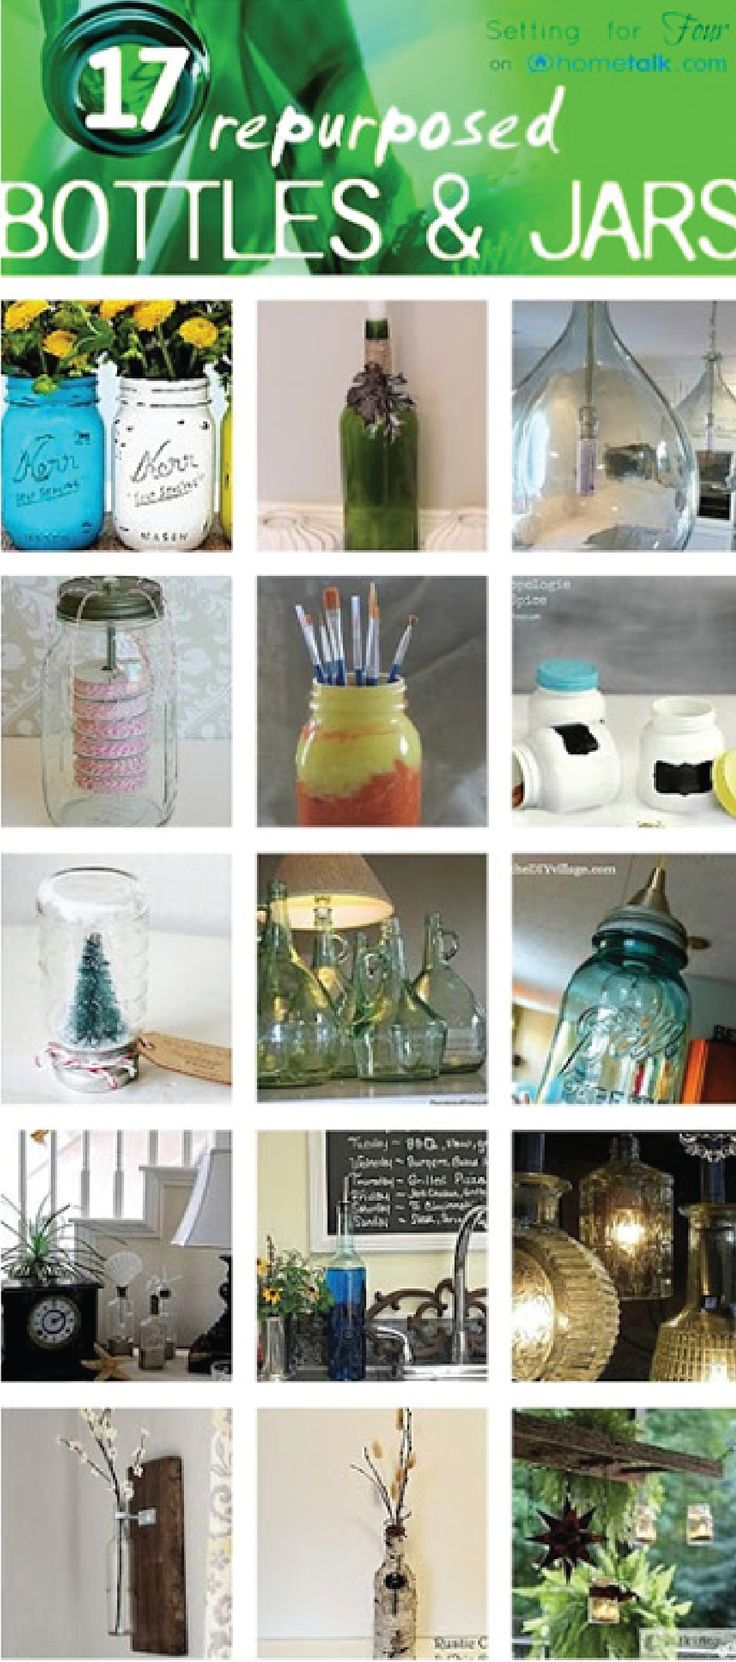 121 best reduce, reuse, upcycle images on pinterest | crafts, do